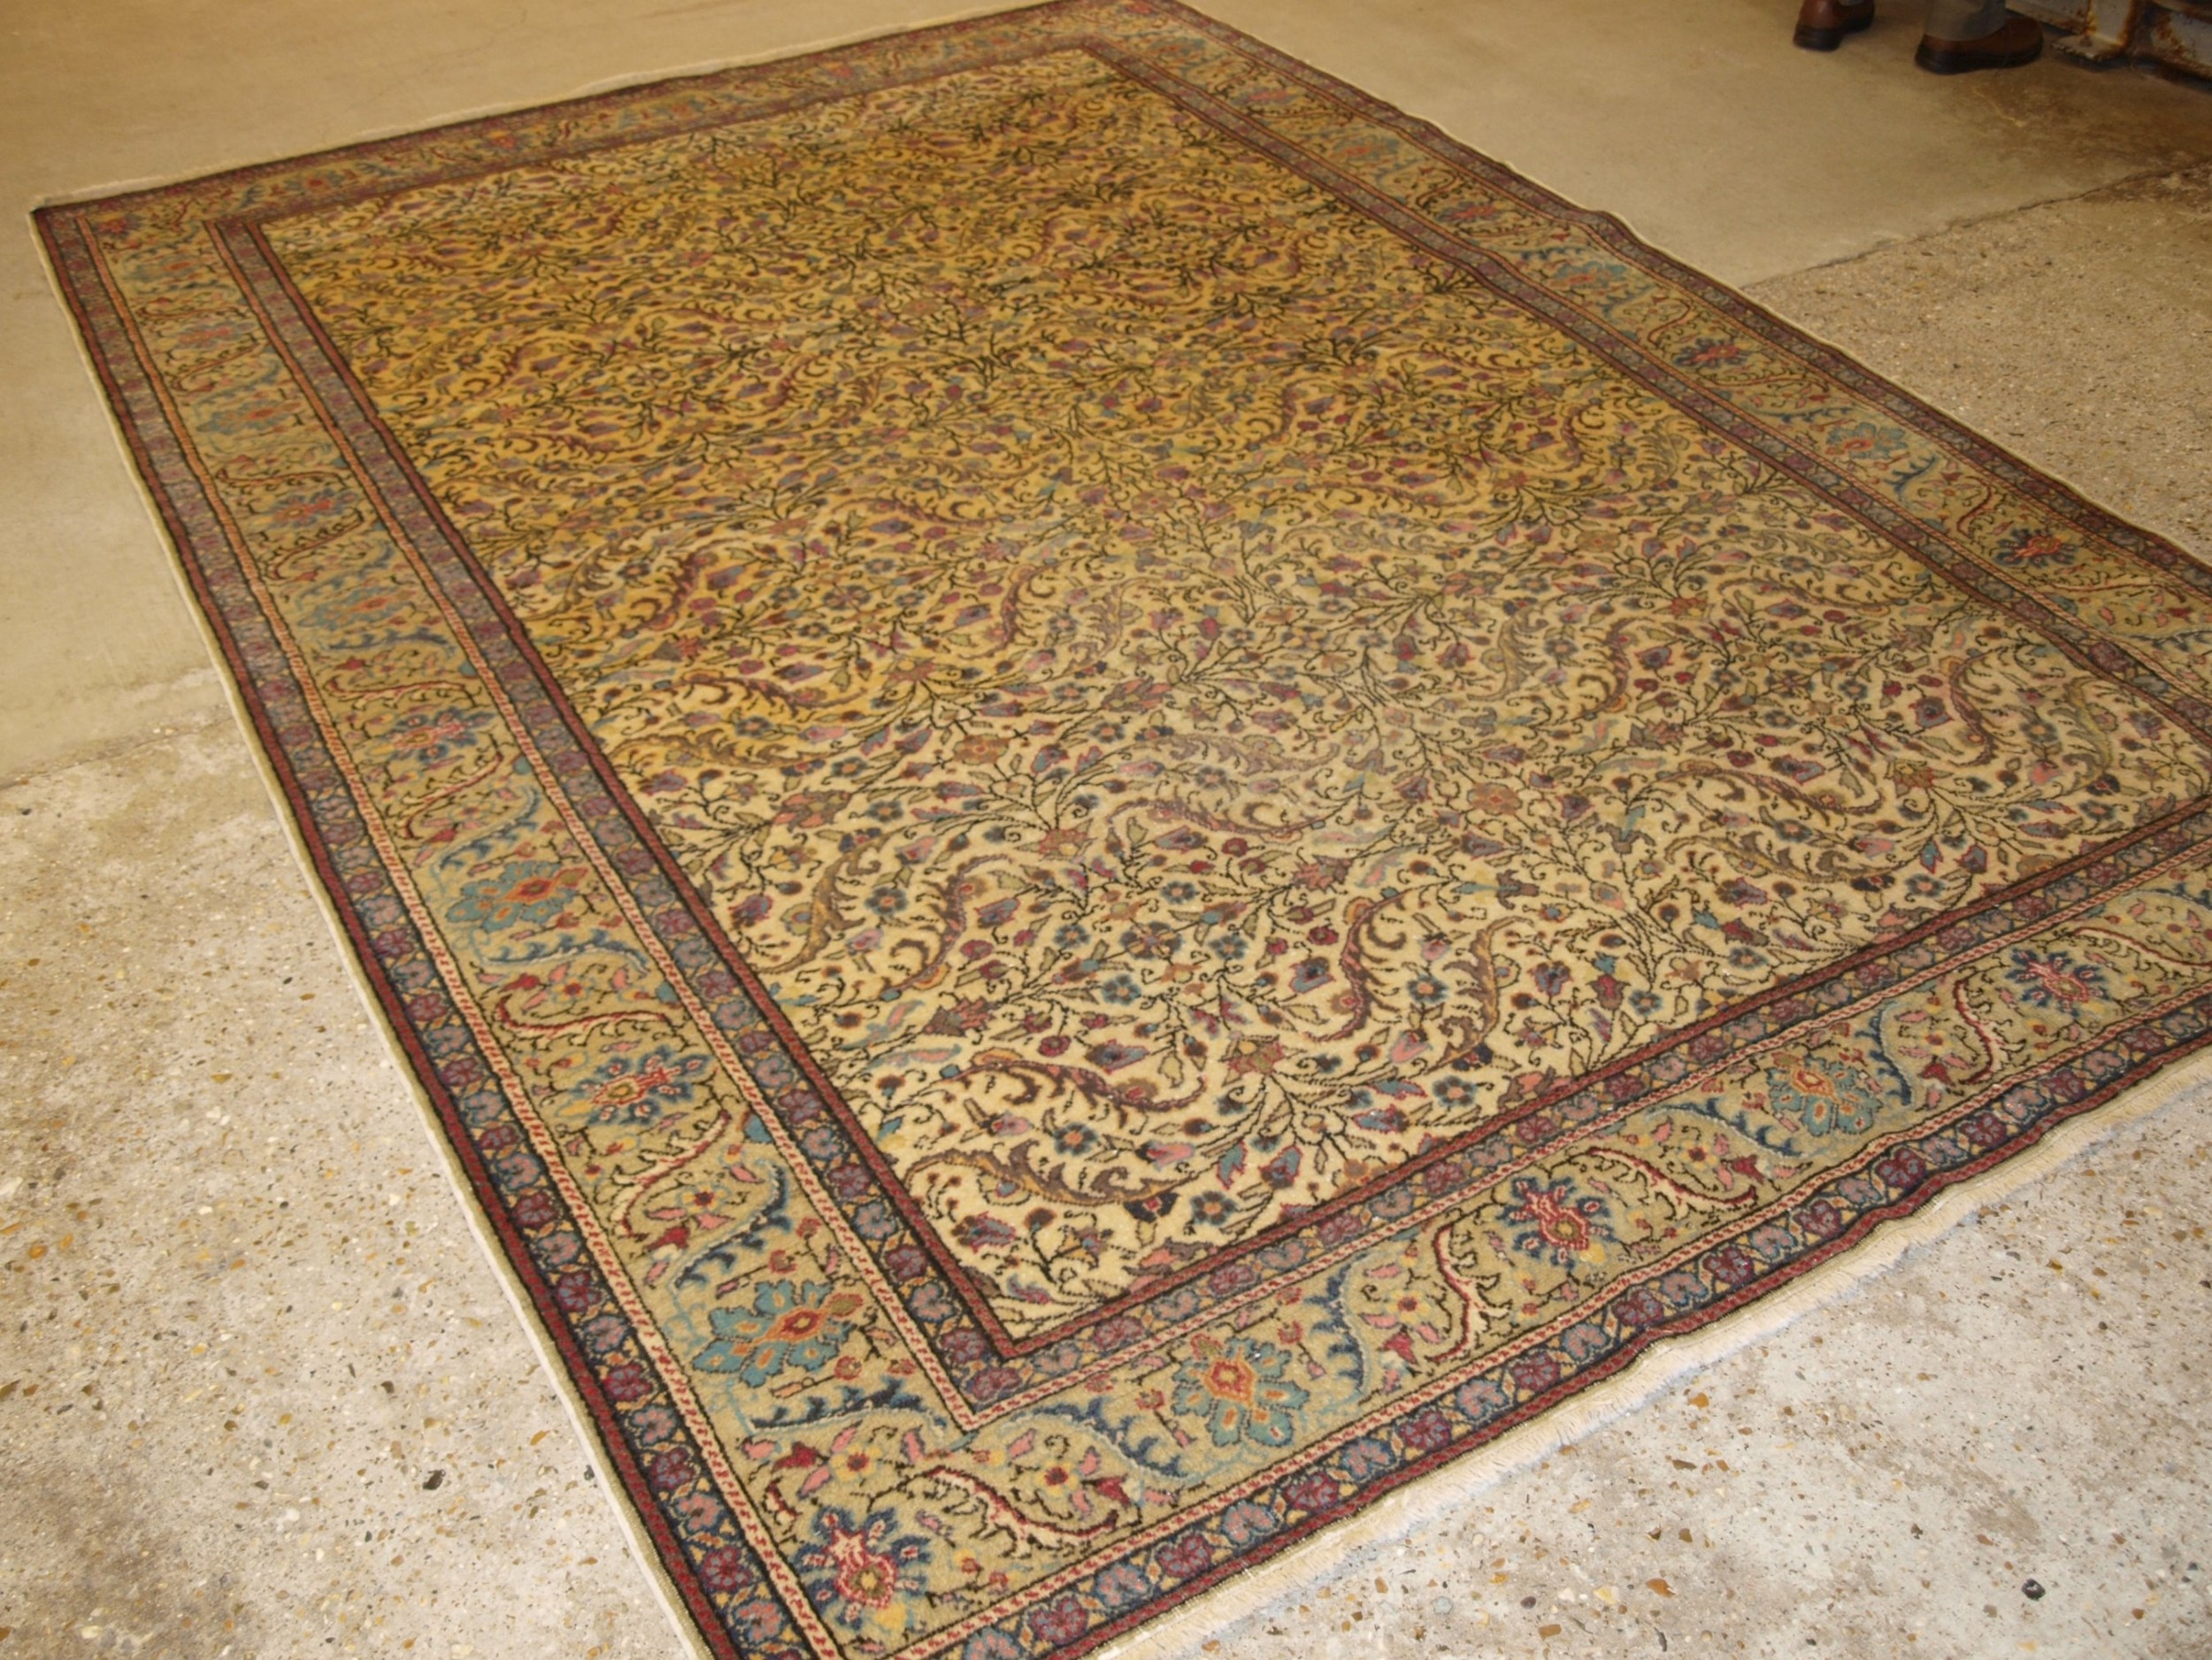 old turkish kayseri carpet all over floral design soft colours good condition circa 1920